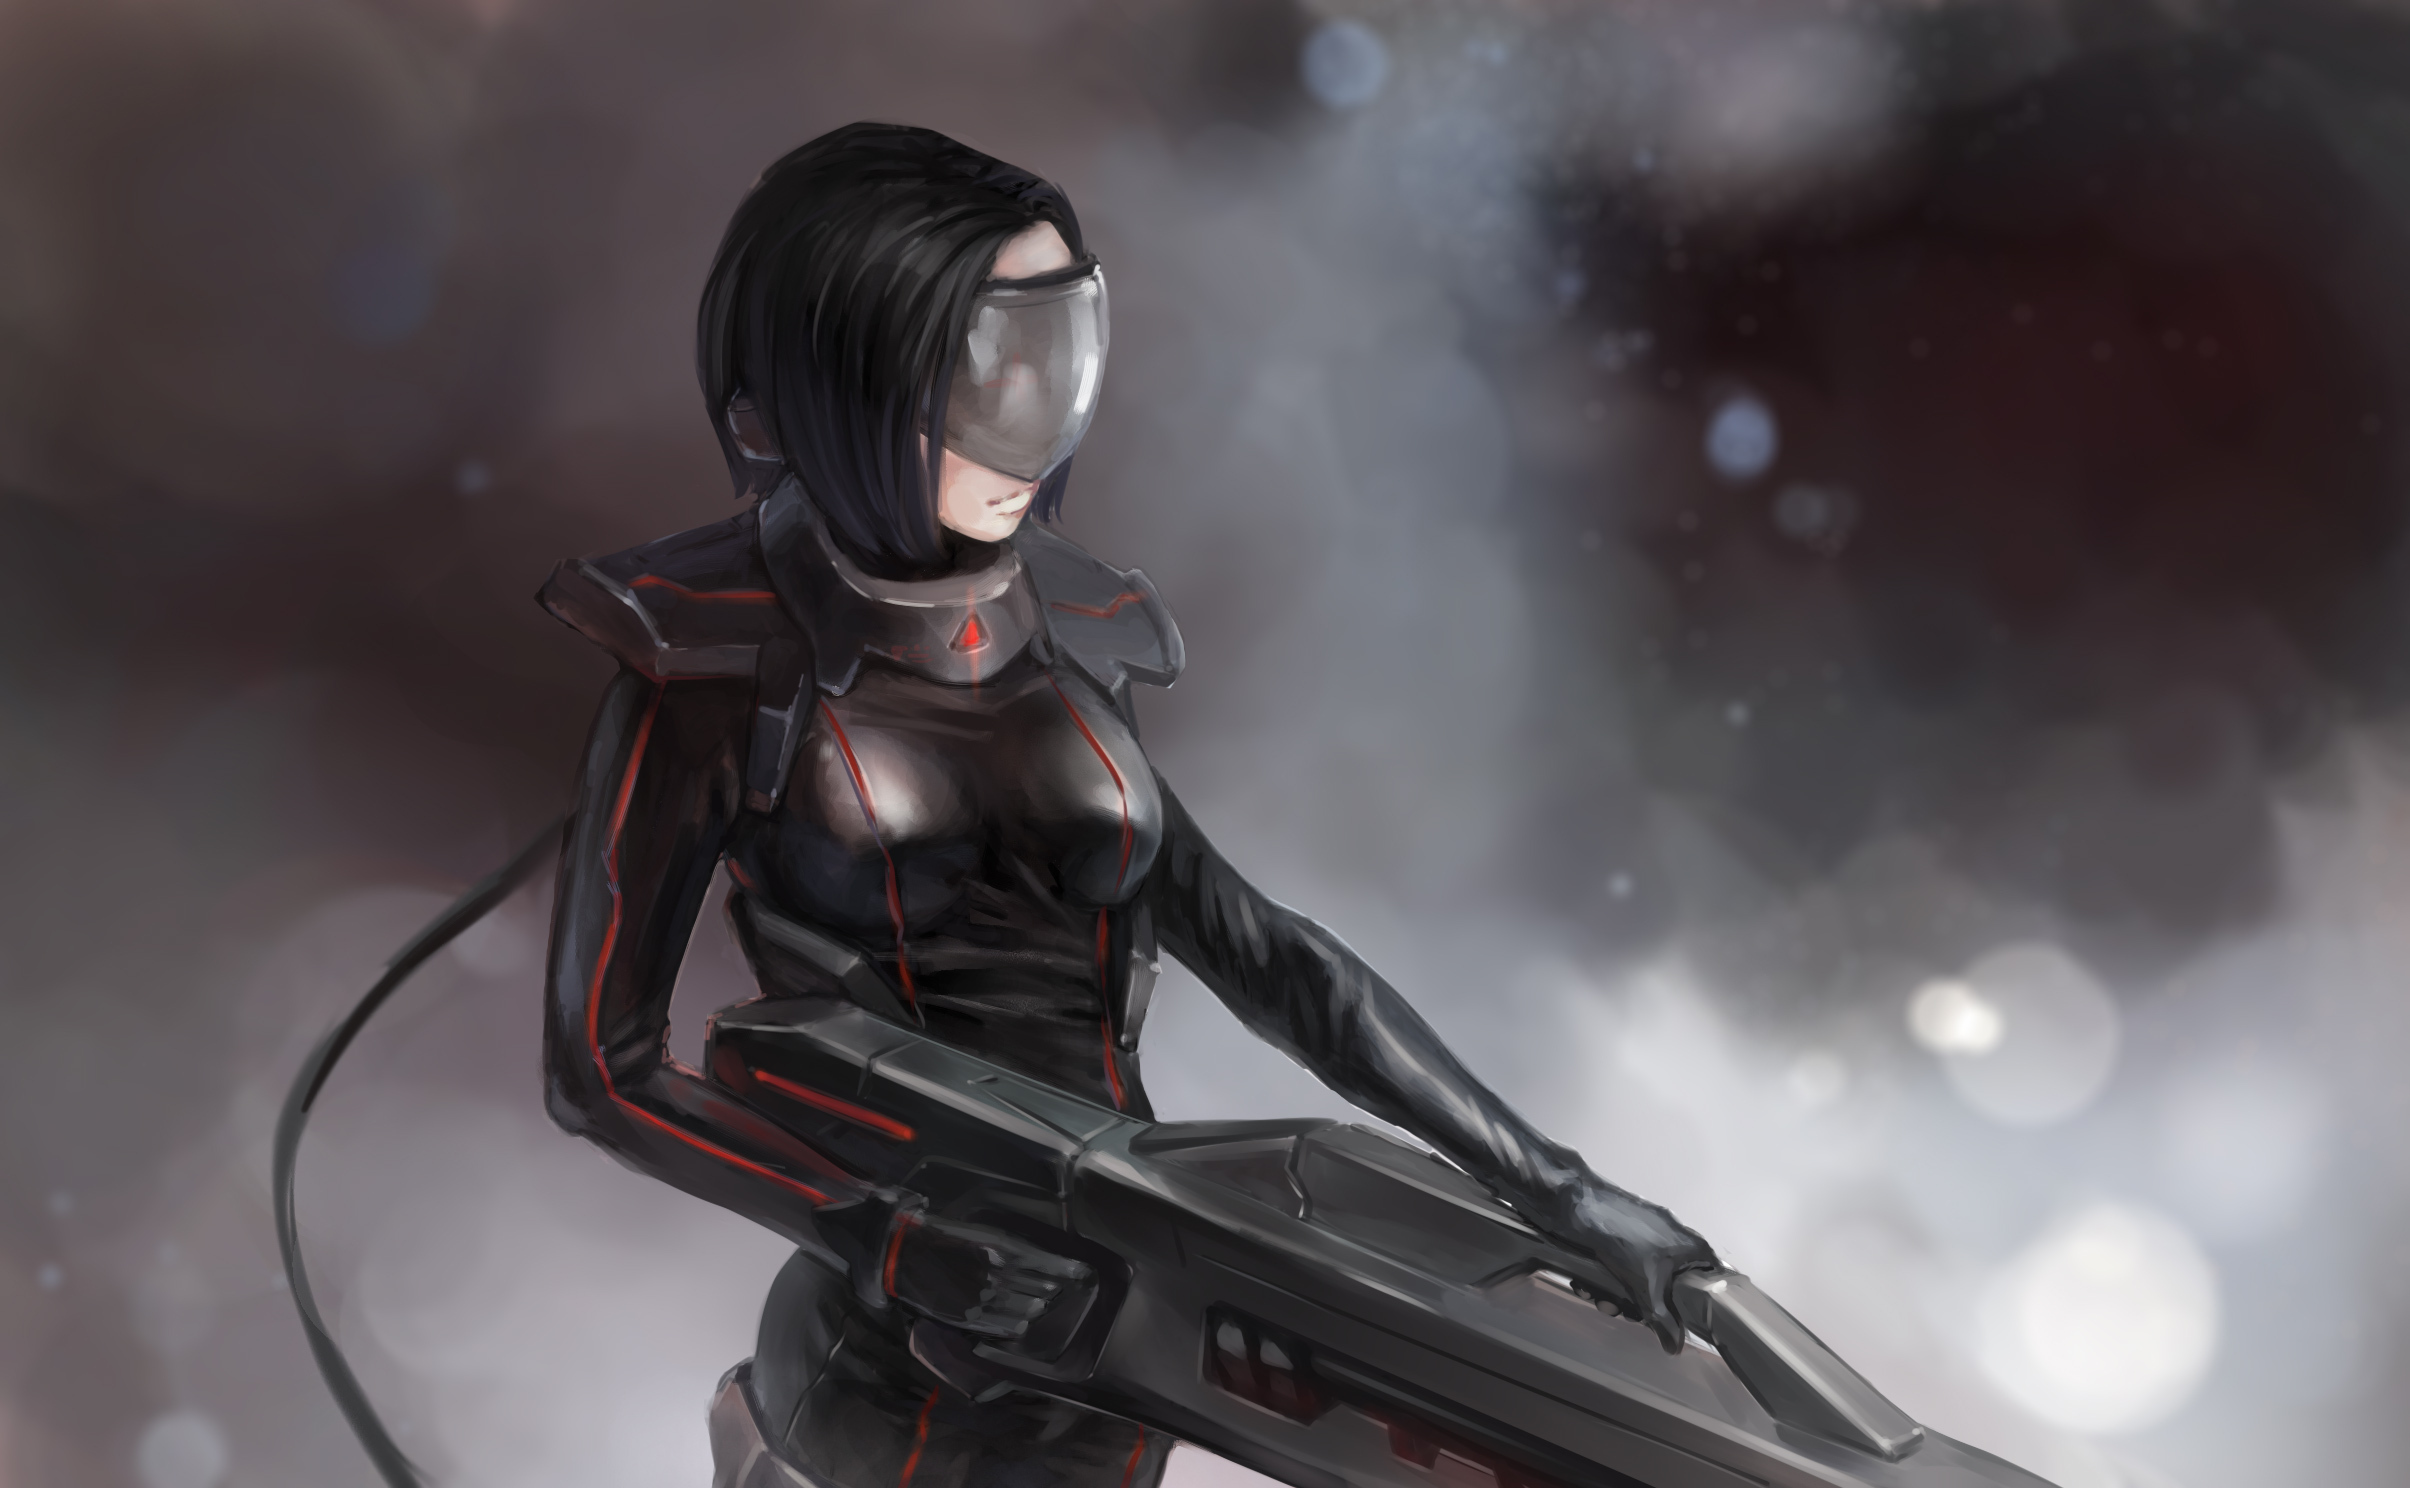 Alpha Coders Wallpaper Abyss Sci Fi Women Warrior 314882Anime Futuristic Warrior